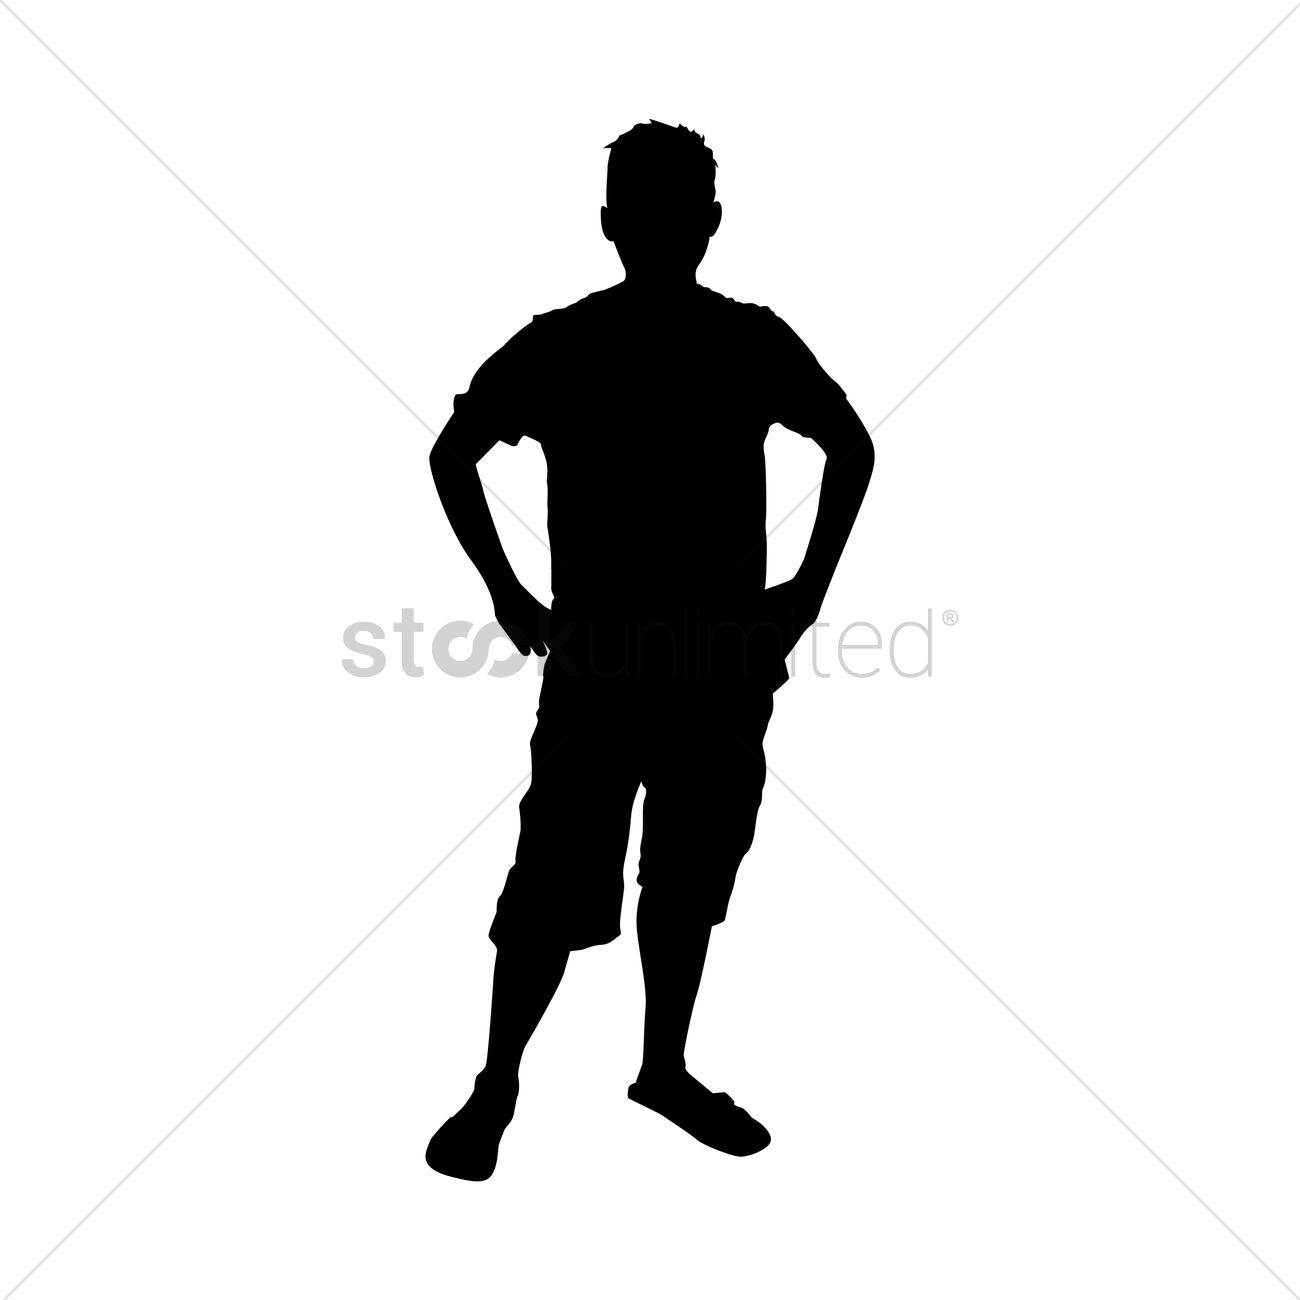 1300x1300 Silhouette Of Man Standing With Hands On Hips Vector Image